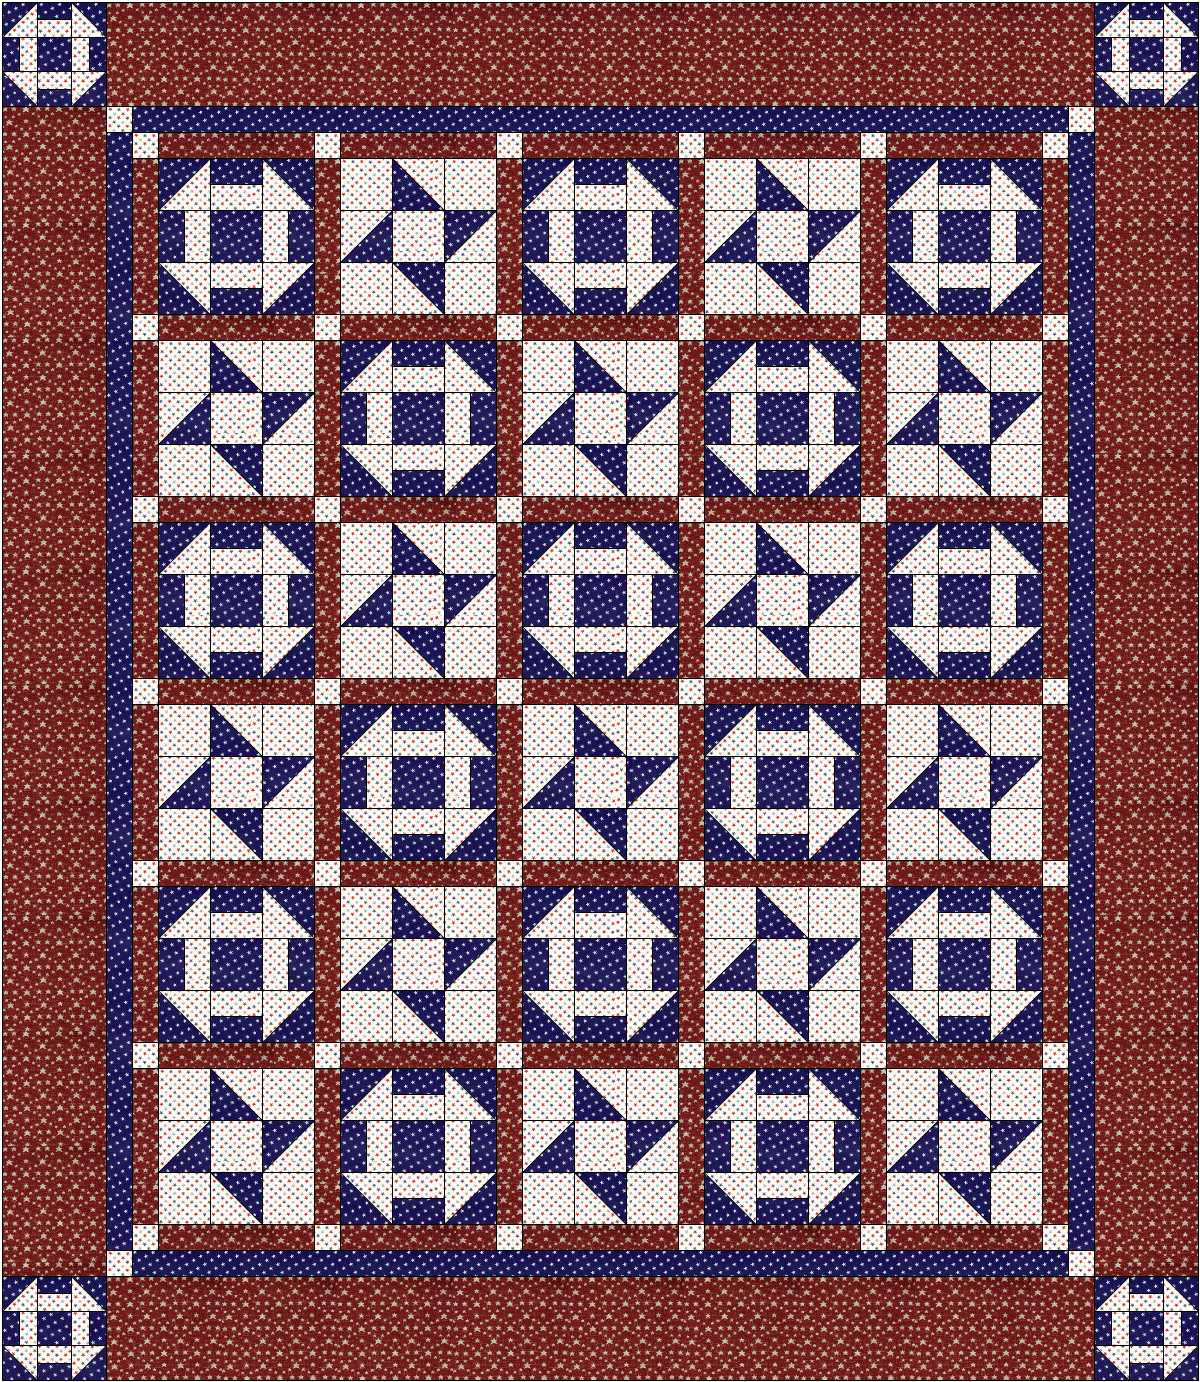 Quilt Patterns For Quilts Of Valor : Alycia Quilts: Quilt of Valor Pattern